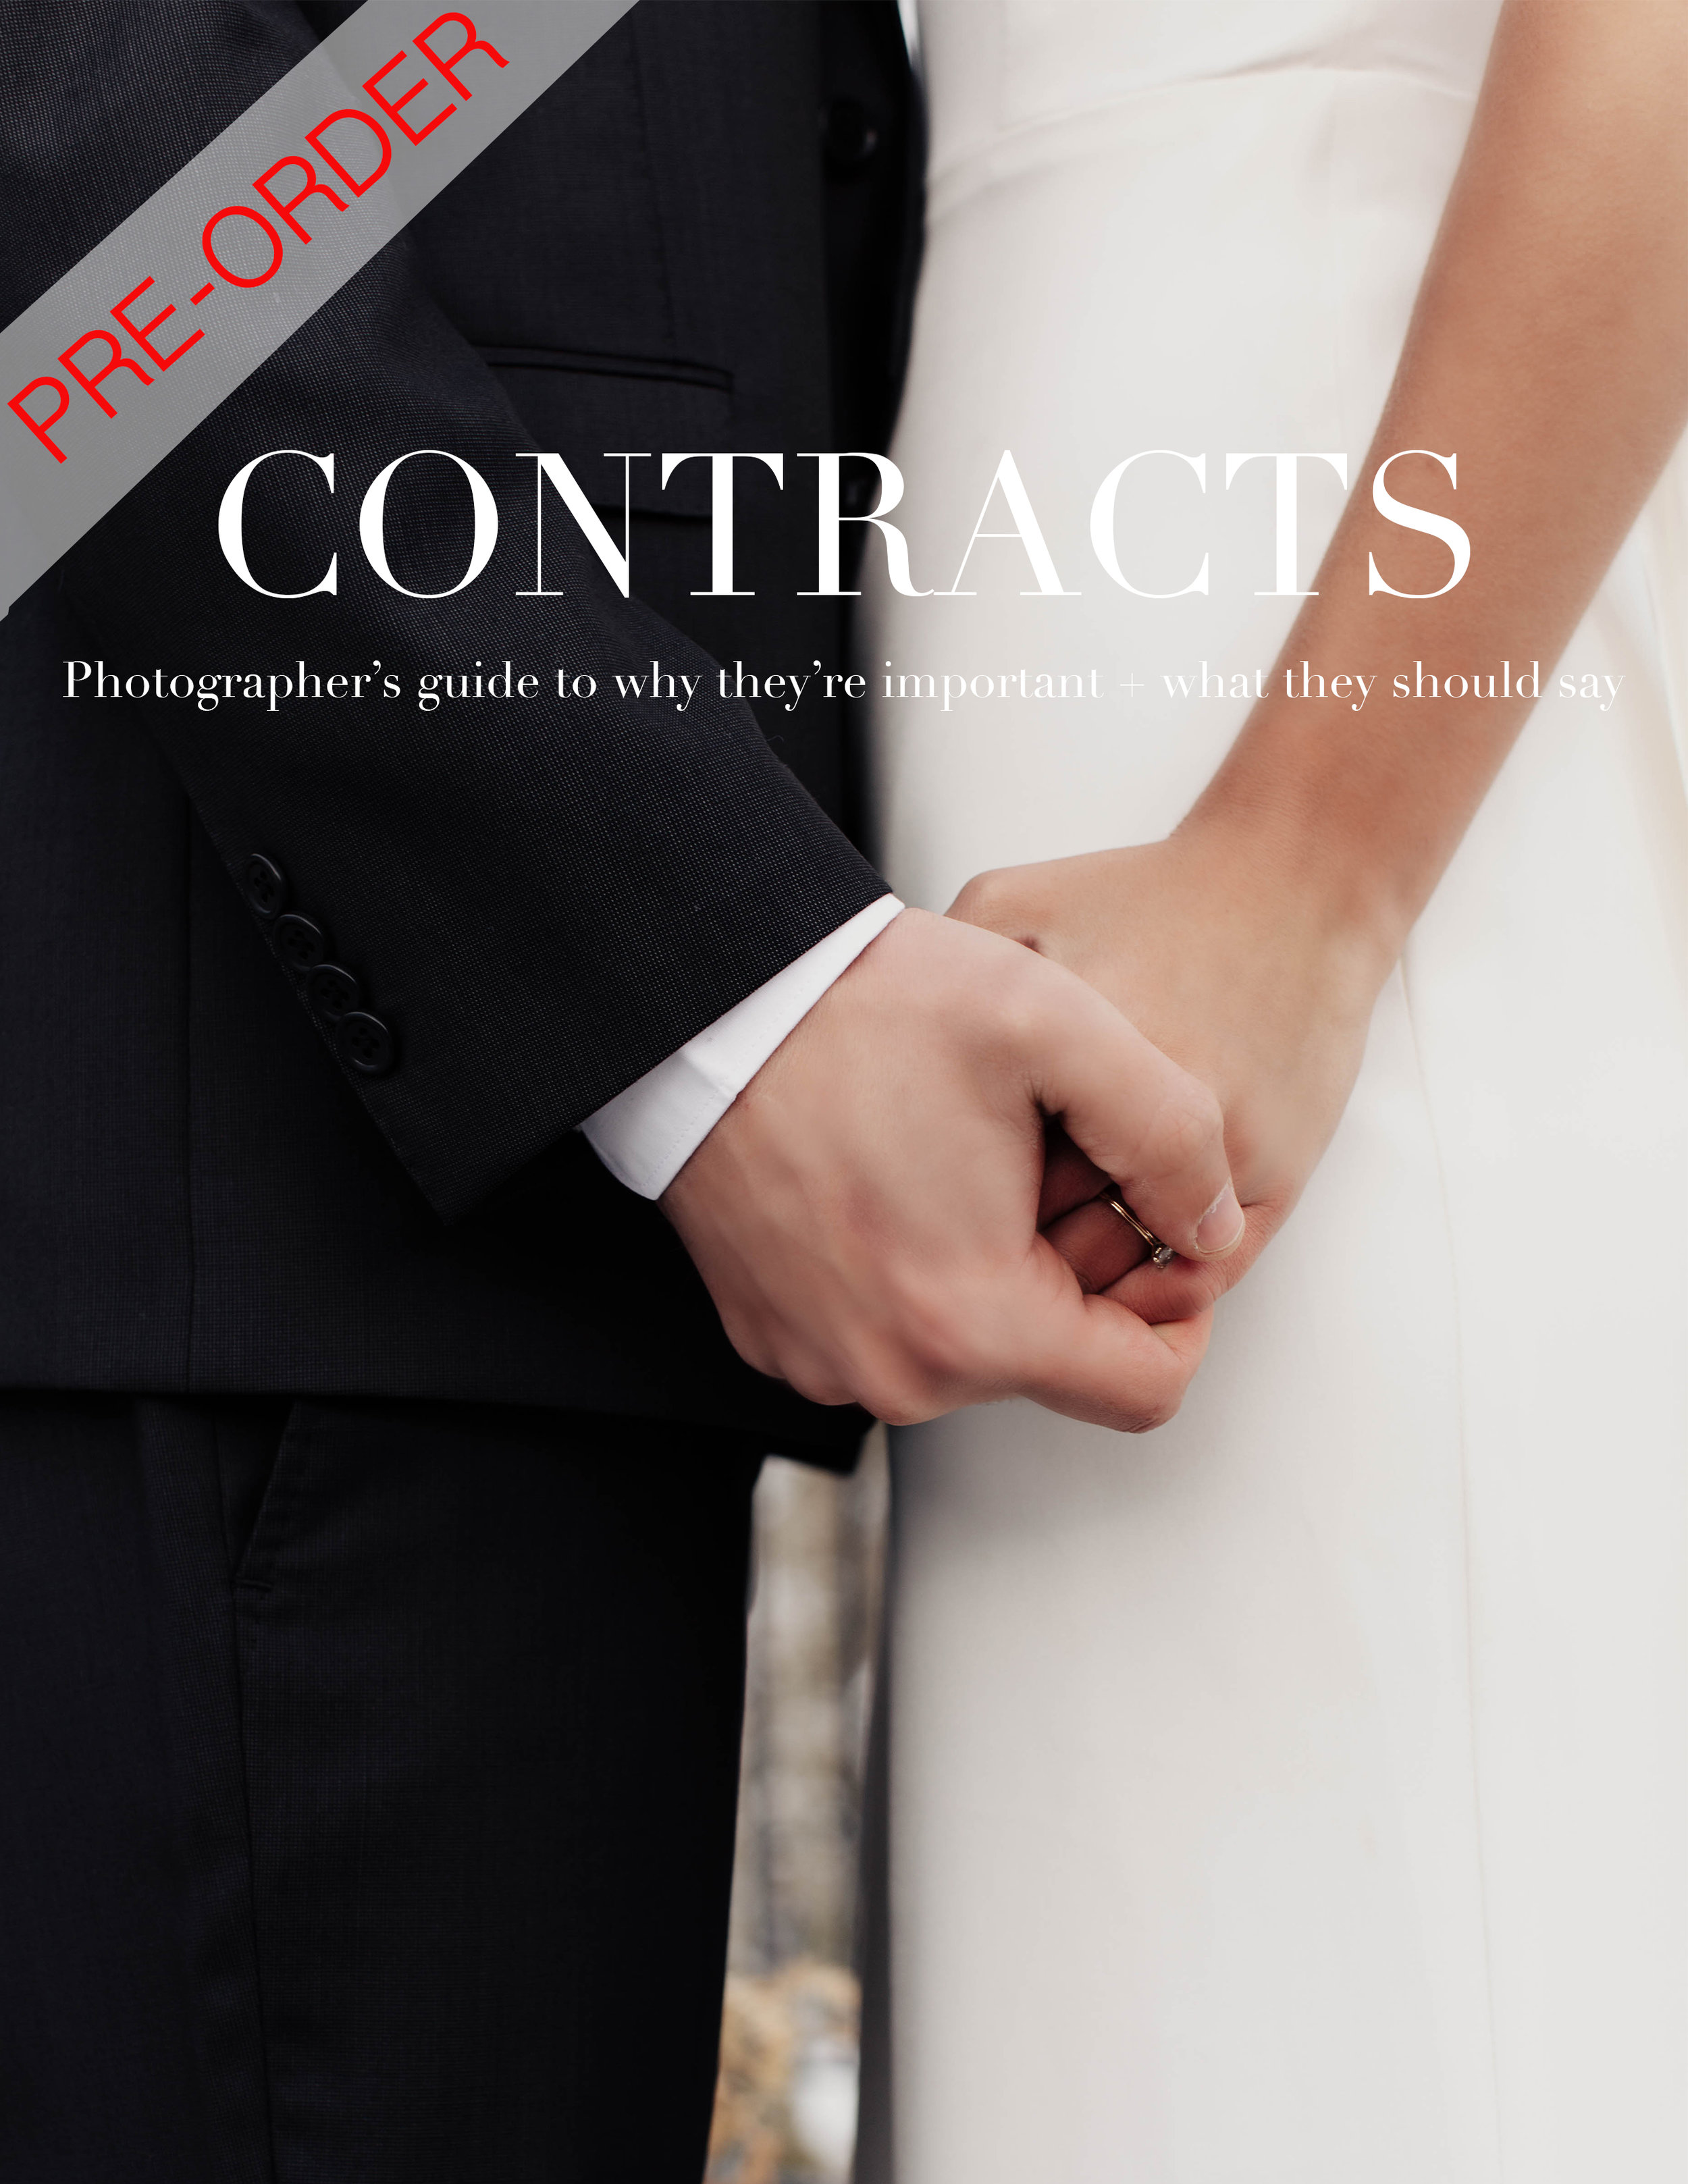 $100 - *PRE ORDER* This guide will be available later this year, and will include details on why your contract is crucial to your success, as well as what should be included in your contract, and how to make sure you are protected.(Sold and delivered as a Digital PDF File)